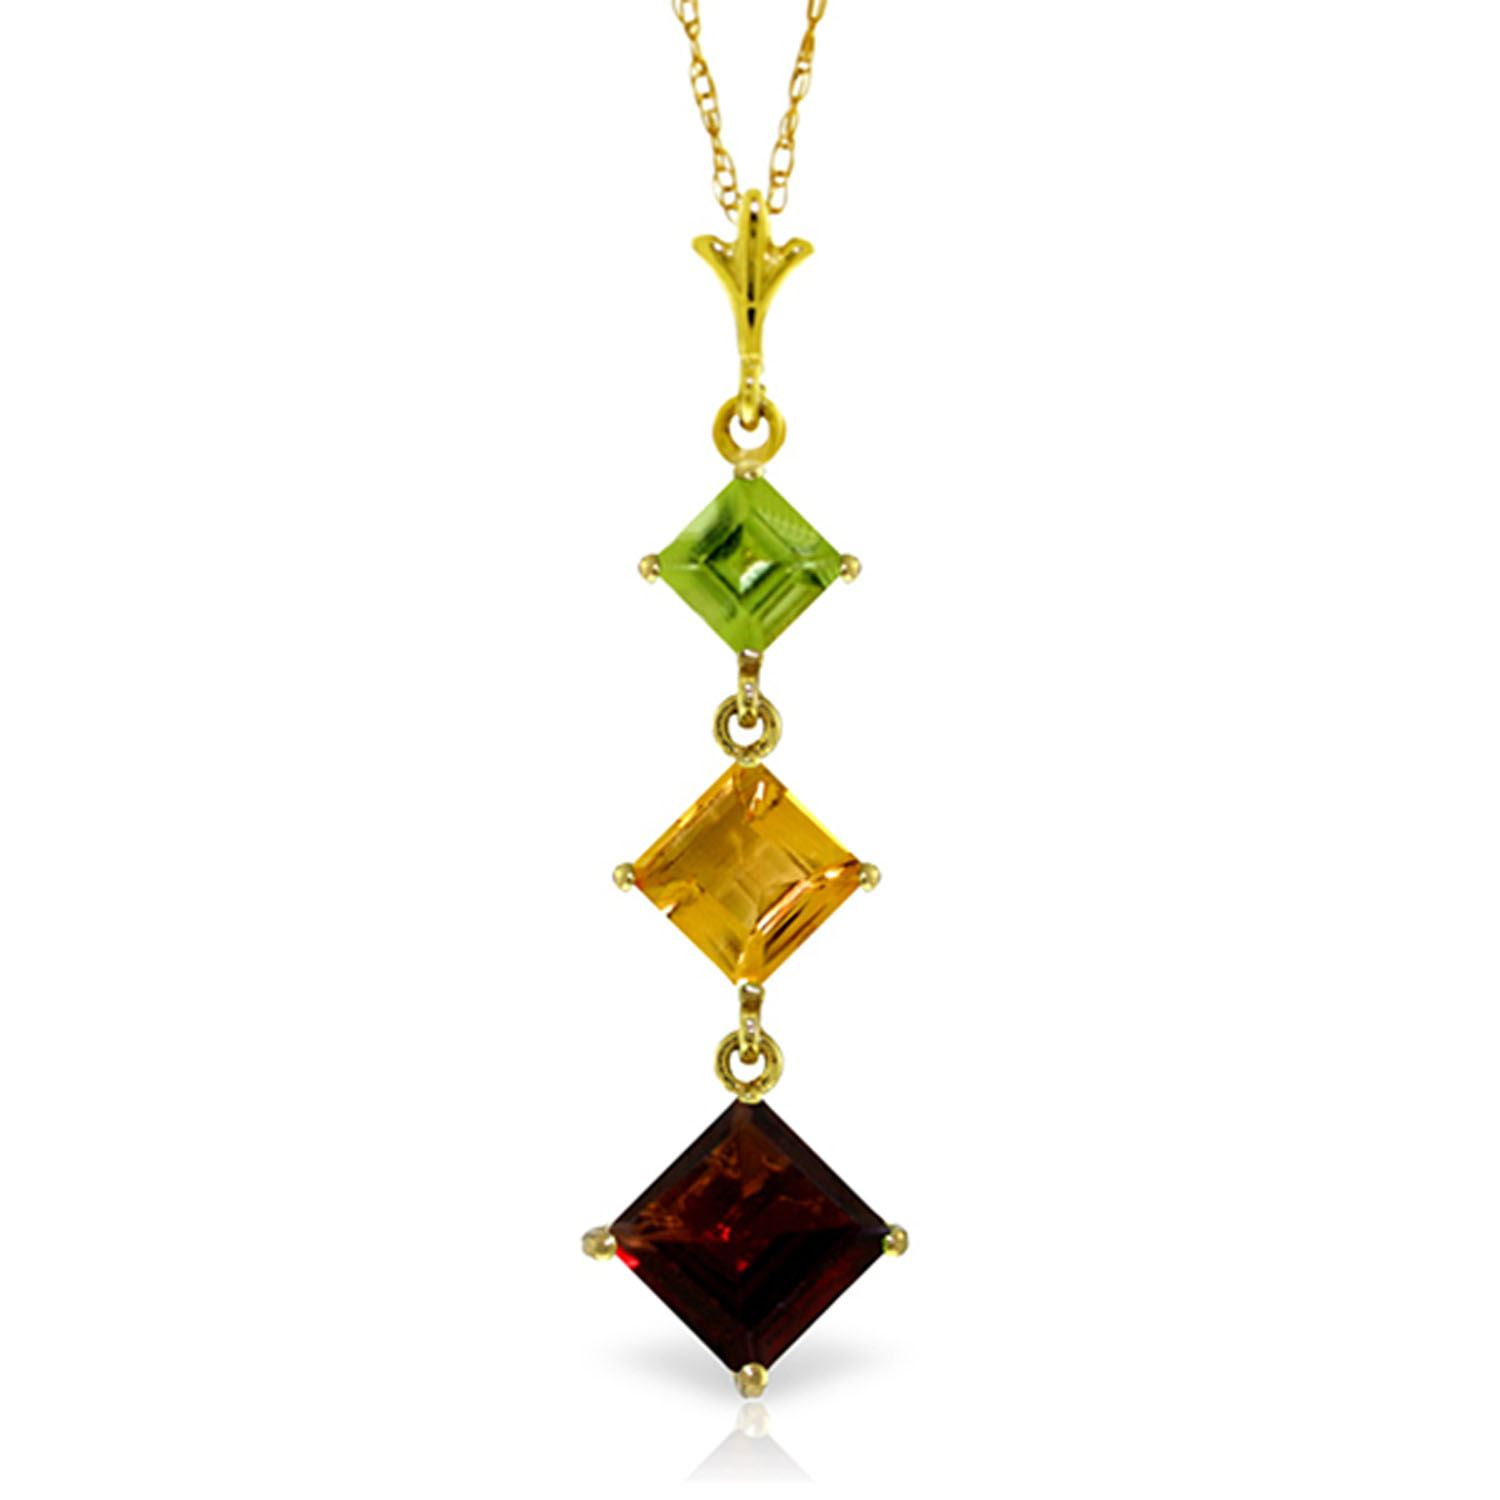 ALARRI 2.4 Carat 14K Solid White Gold Necklace Peridot Citrine Garnet with 24 Inch Chain Length